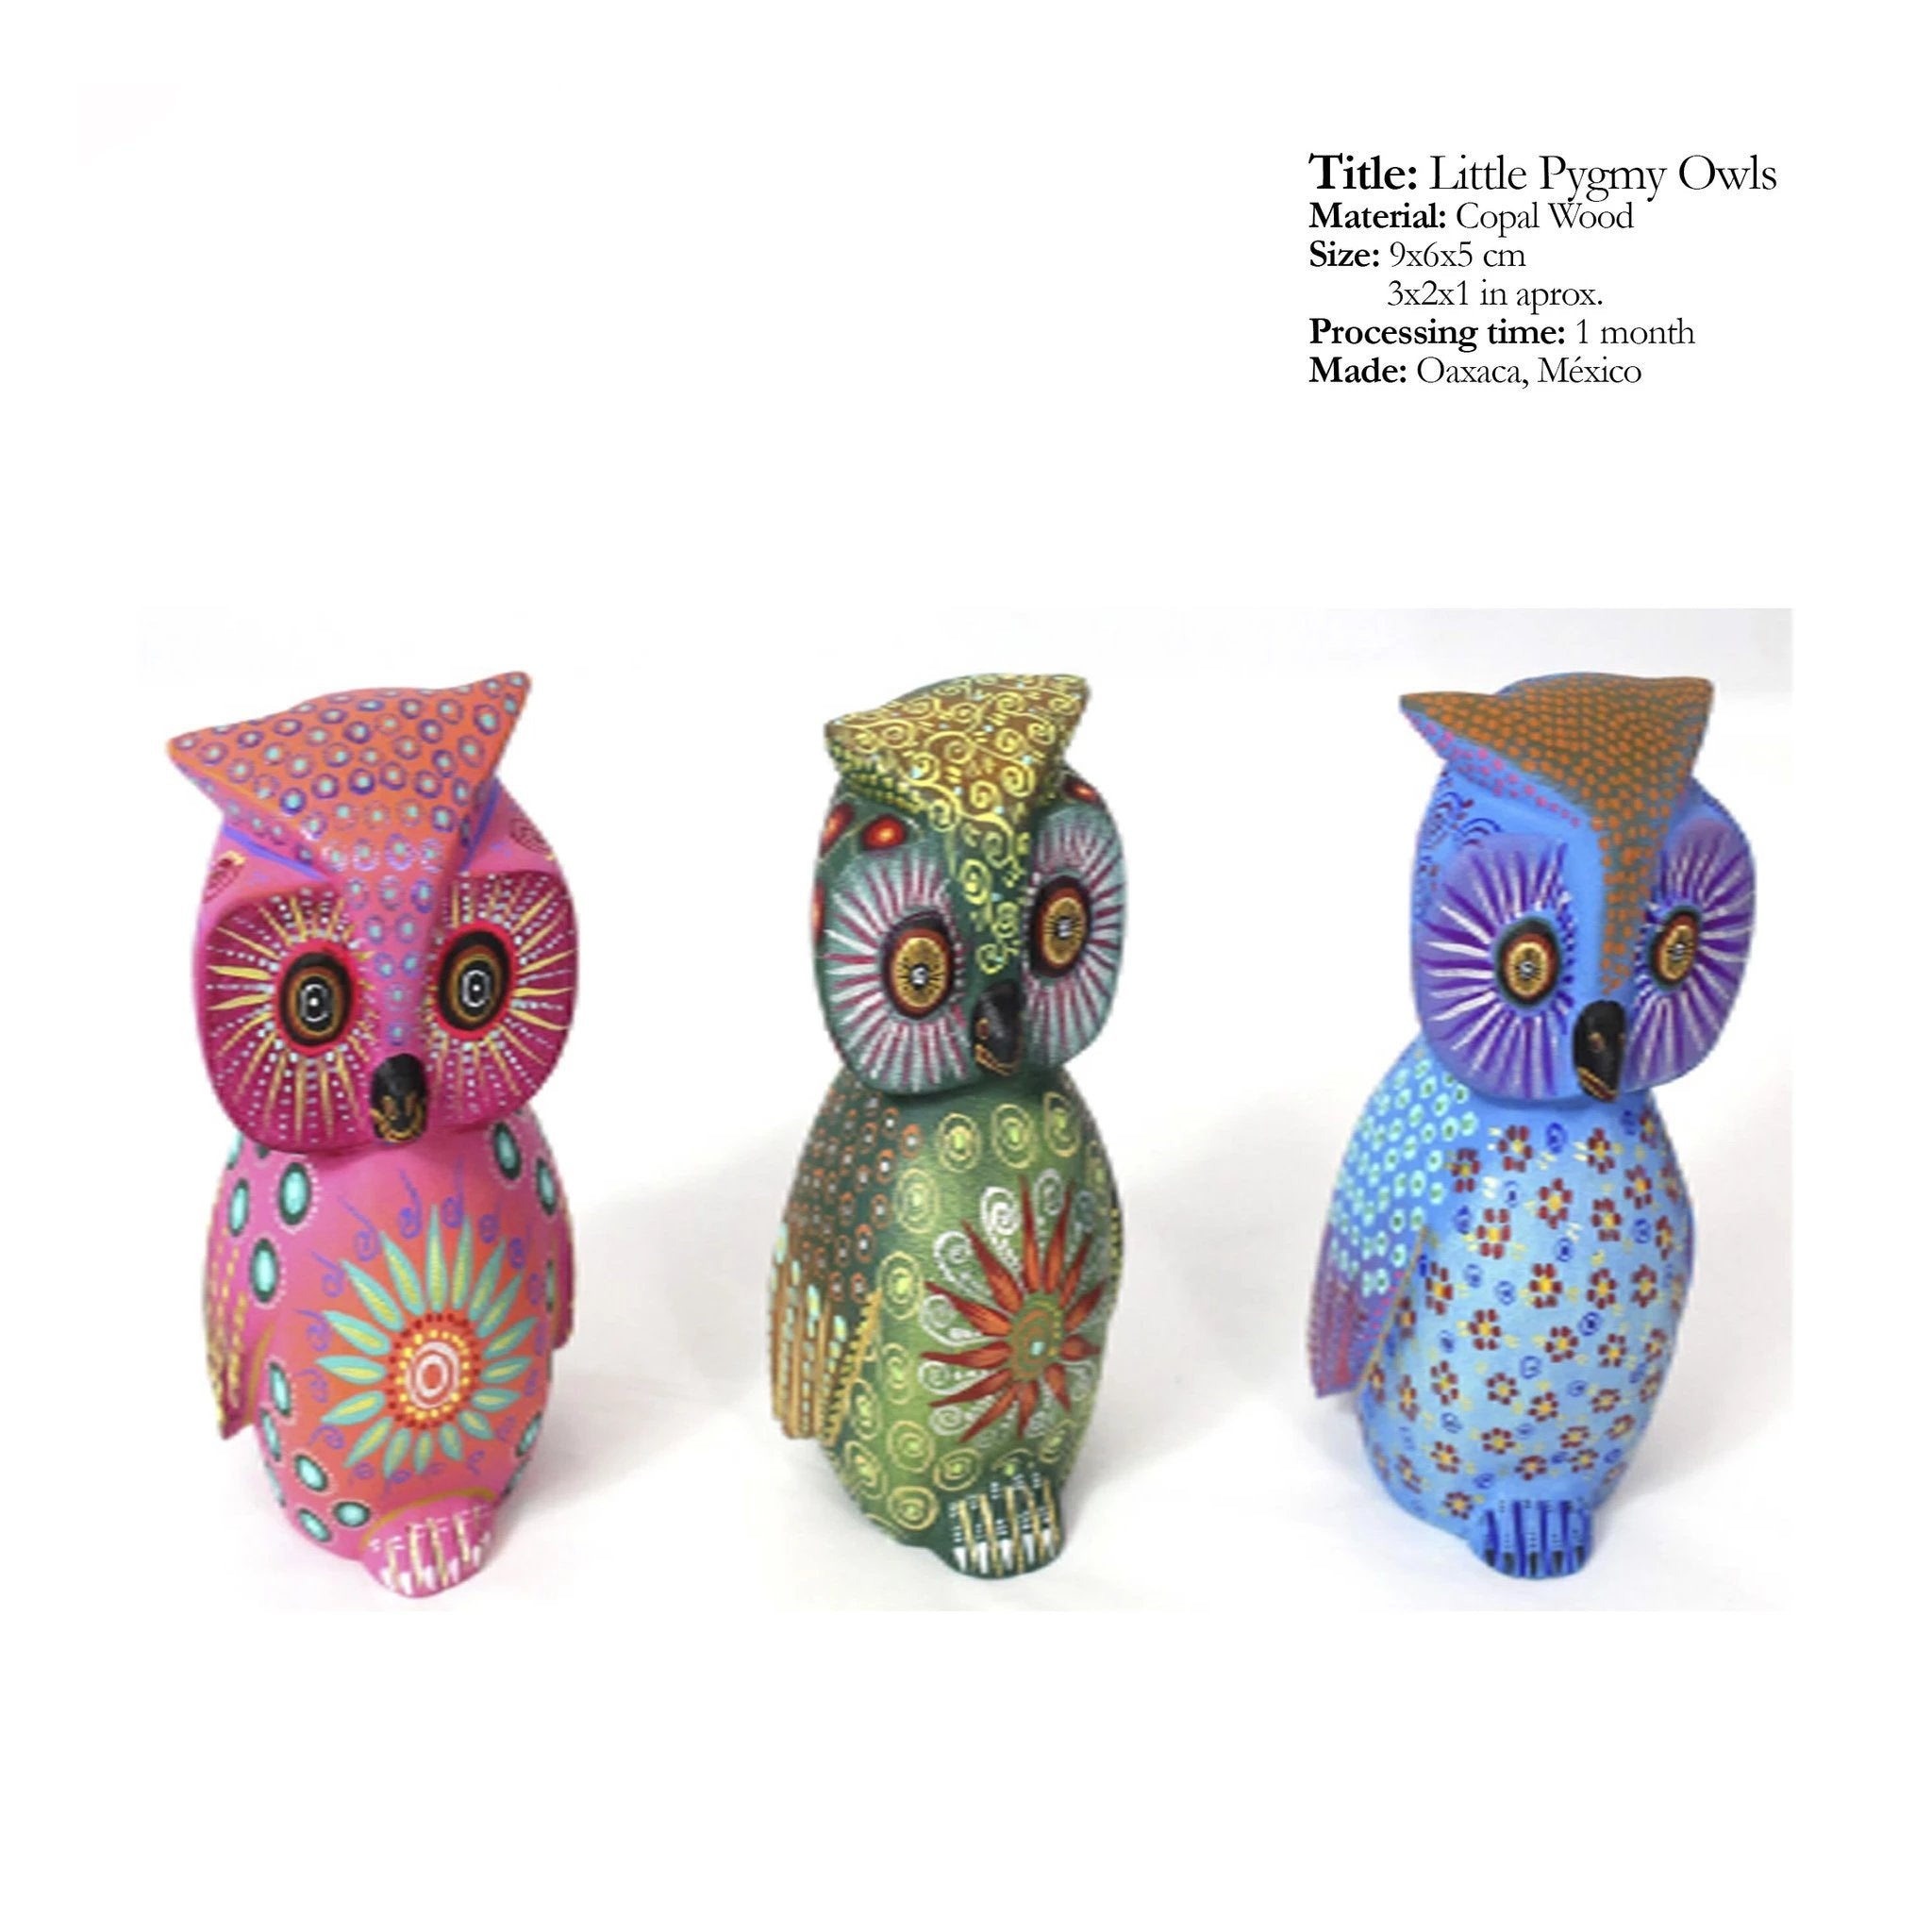 Little Pygmy Owls - Traditional Alebrijes